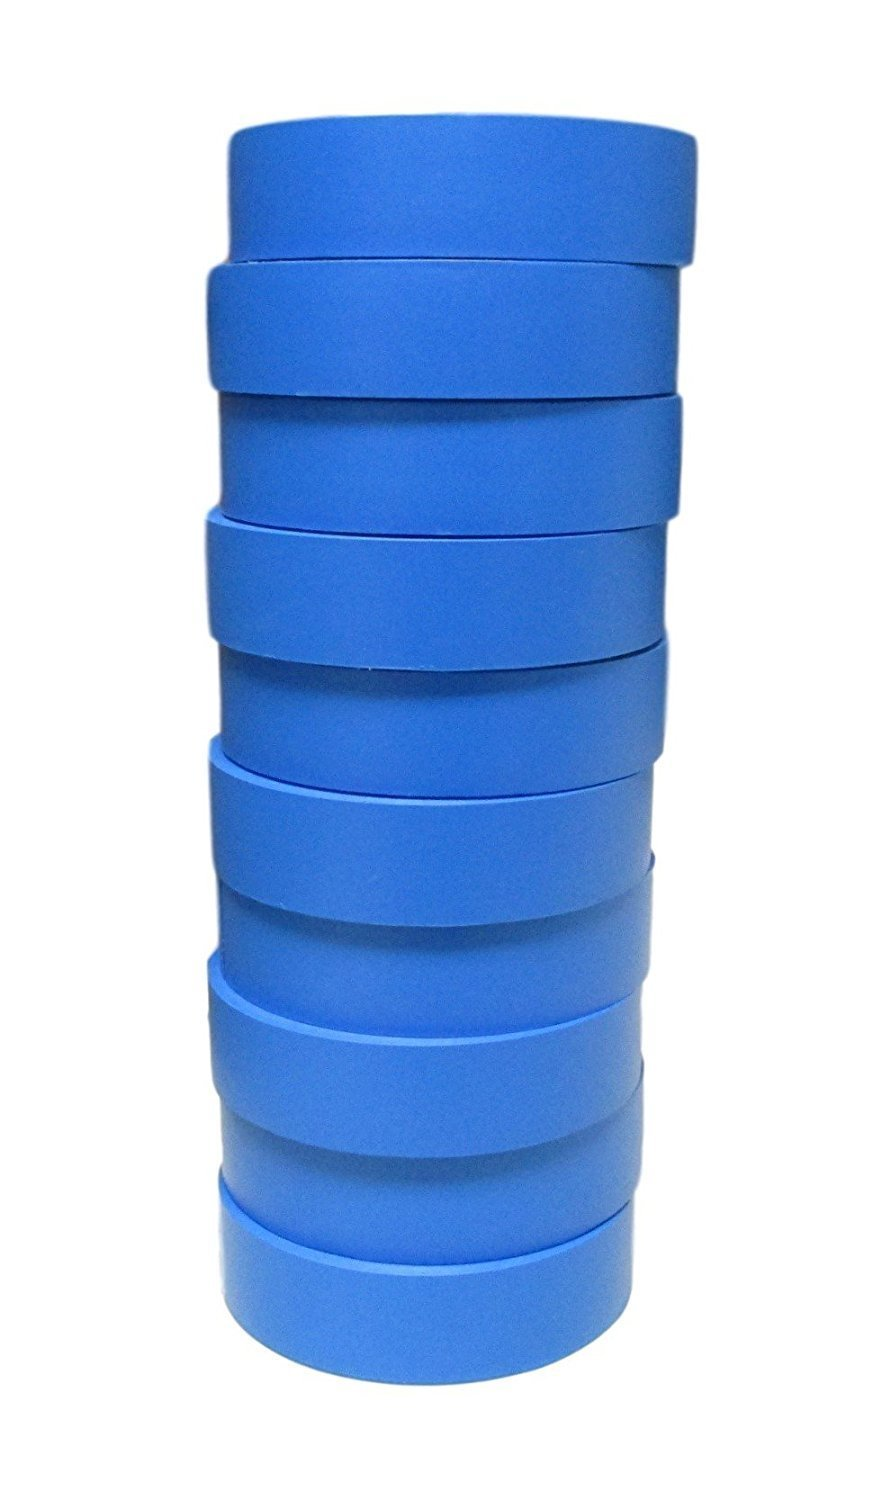 TradeGear Electrical Tape BLUE MATTE – 10 Pk Waterproof, Flame Retardant, Strong Rubber Based Adhesive, UL Listed – Rated for Max. 600V and 80oC Use – Measures 60' x 3/4'' x 0.07''